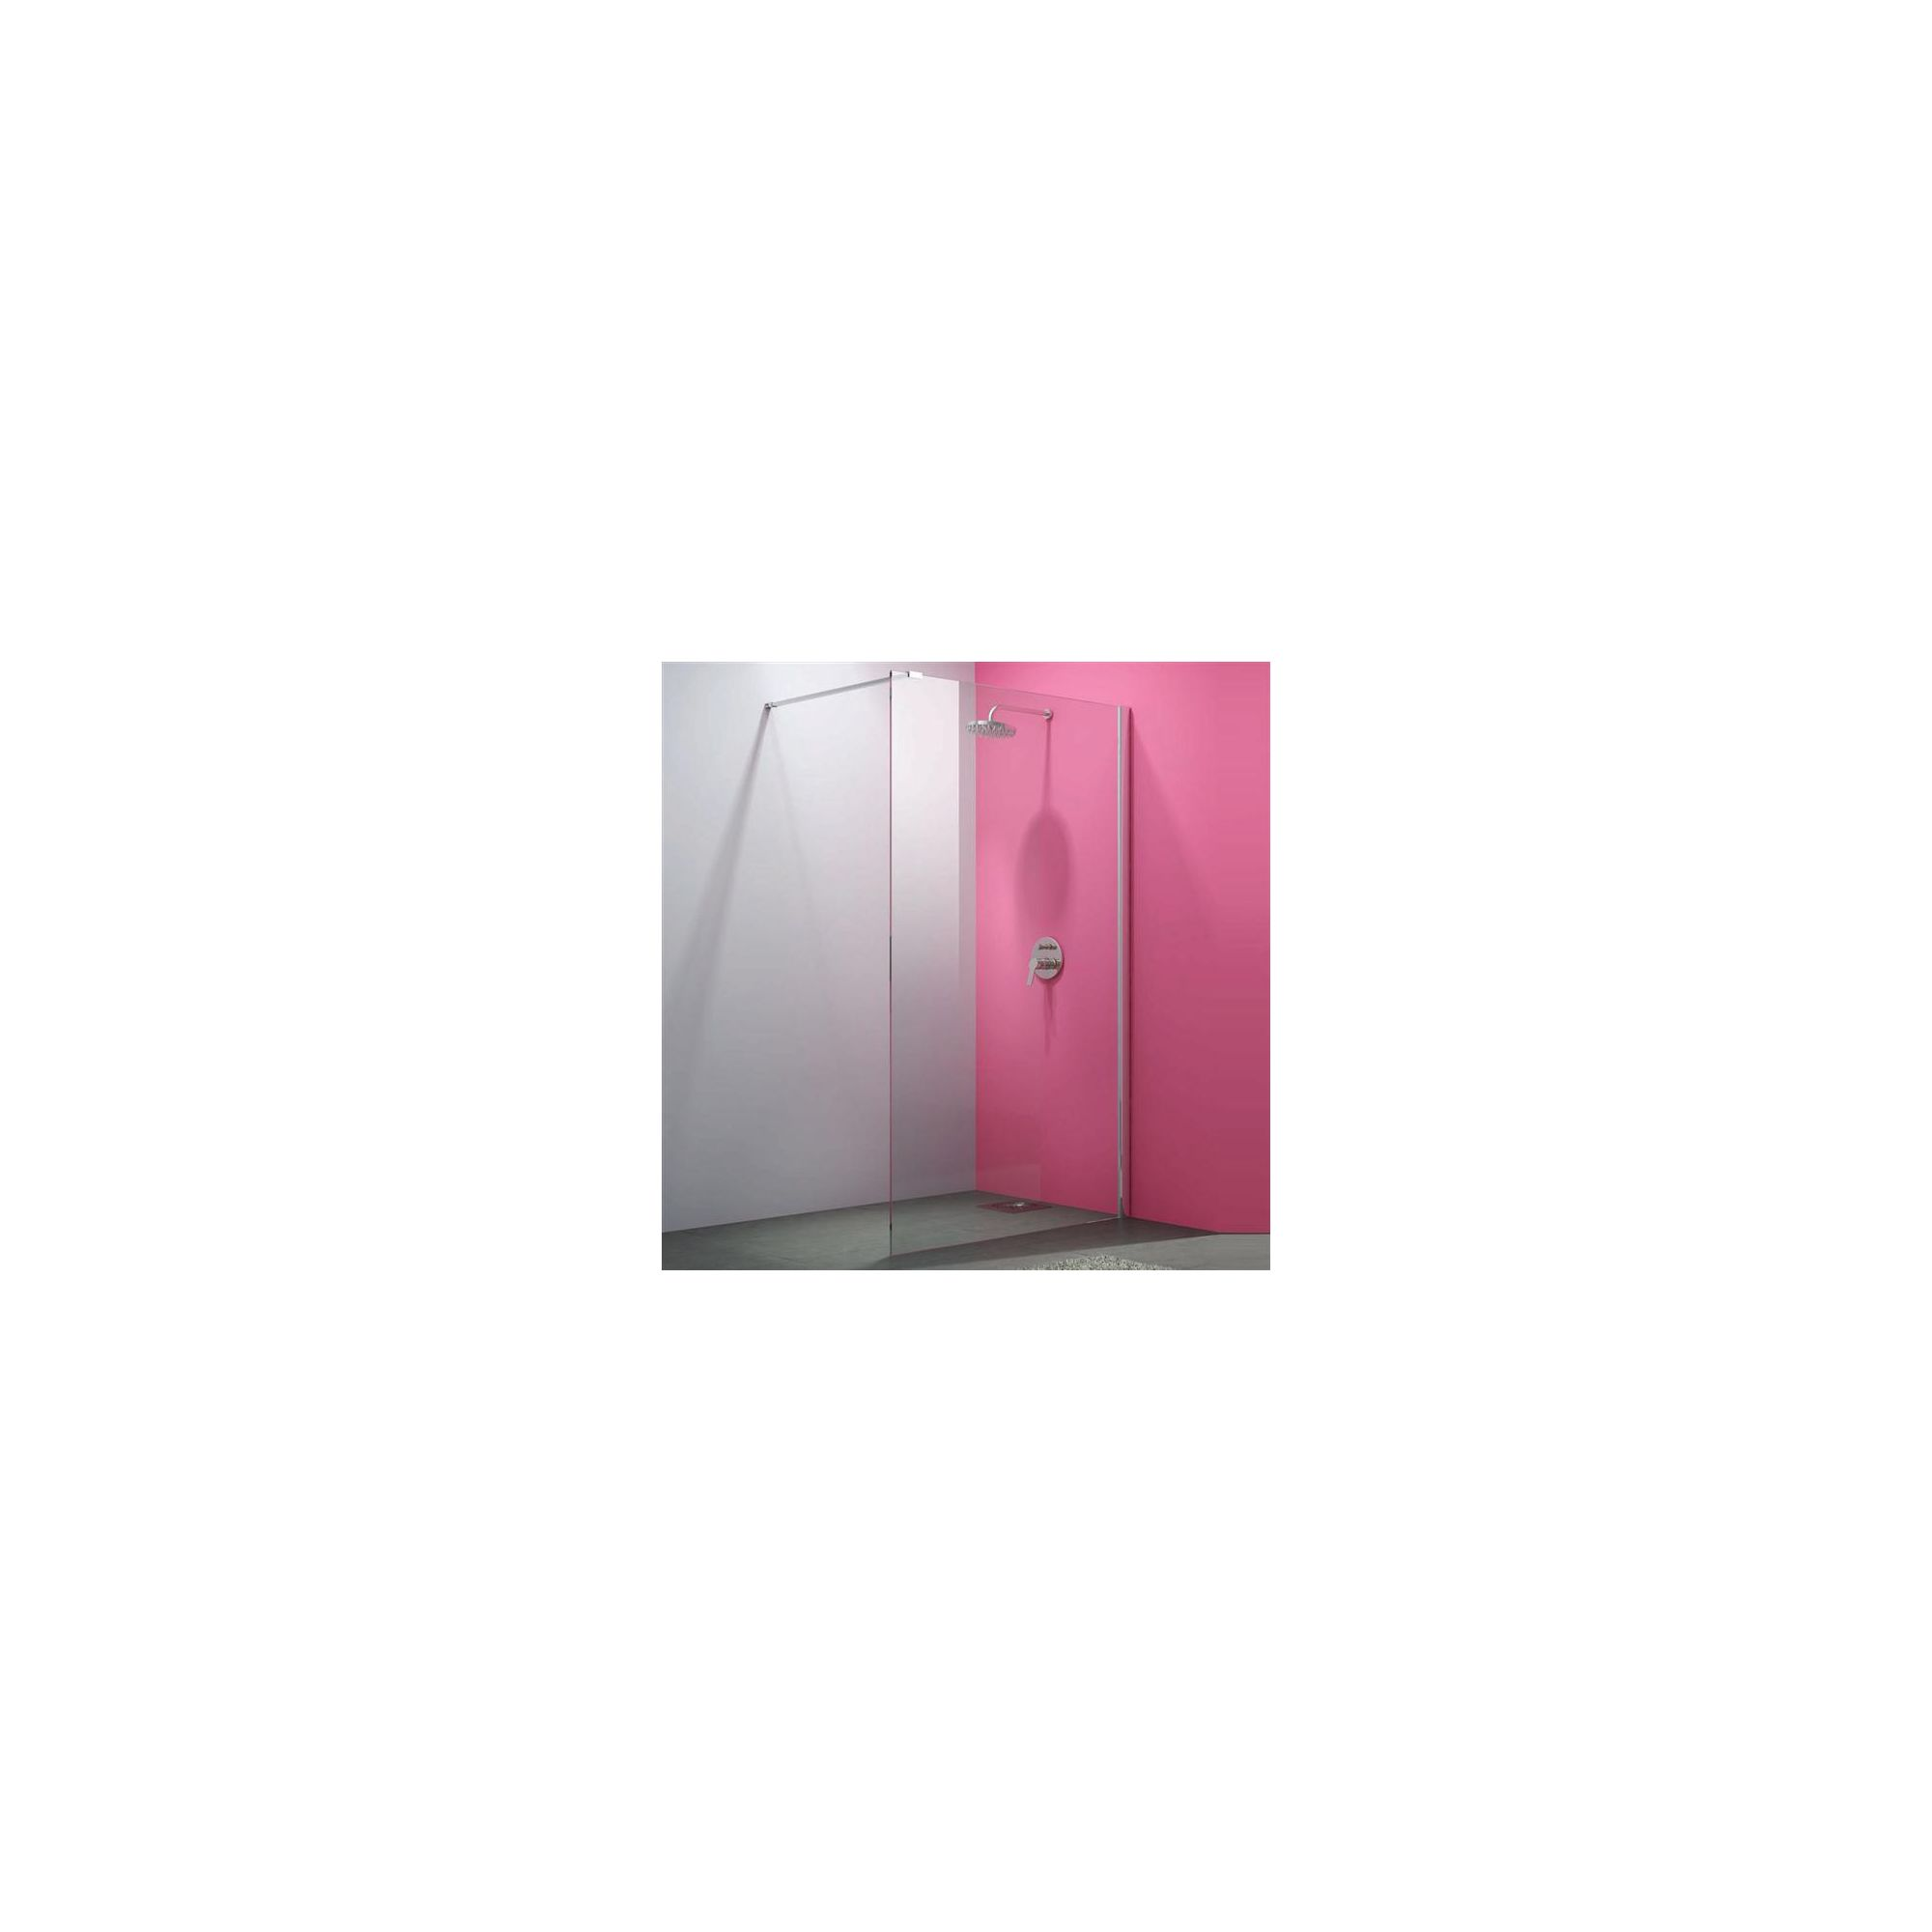 Merlyn Vivid Eight Wet Room Shower Enclosure, 800mm x 800mm, Low Profile Tray, 8mm Glass at Tescos Direct